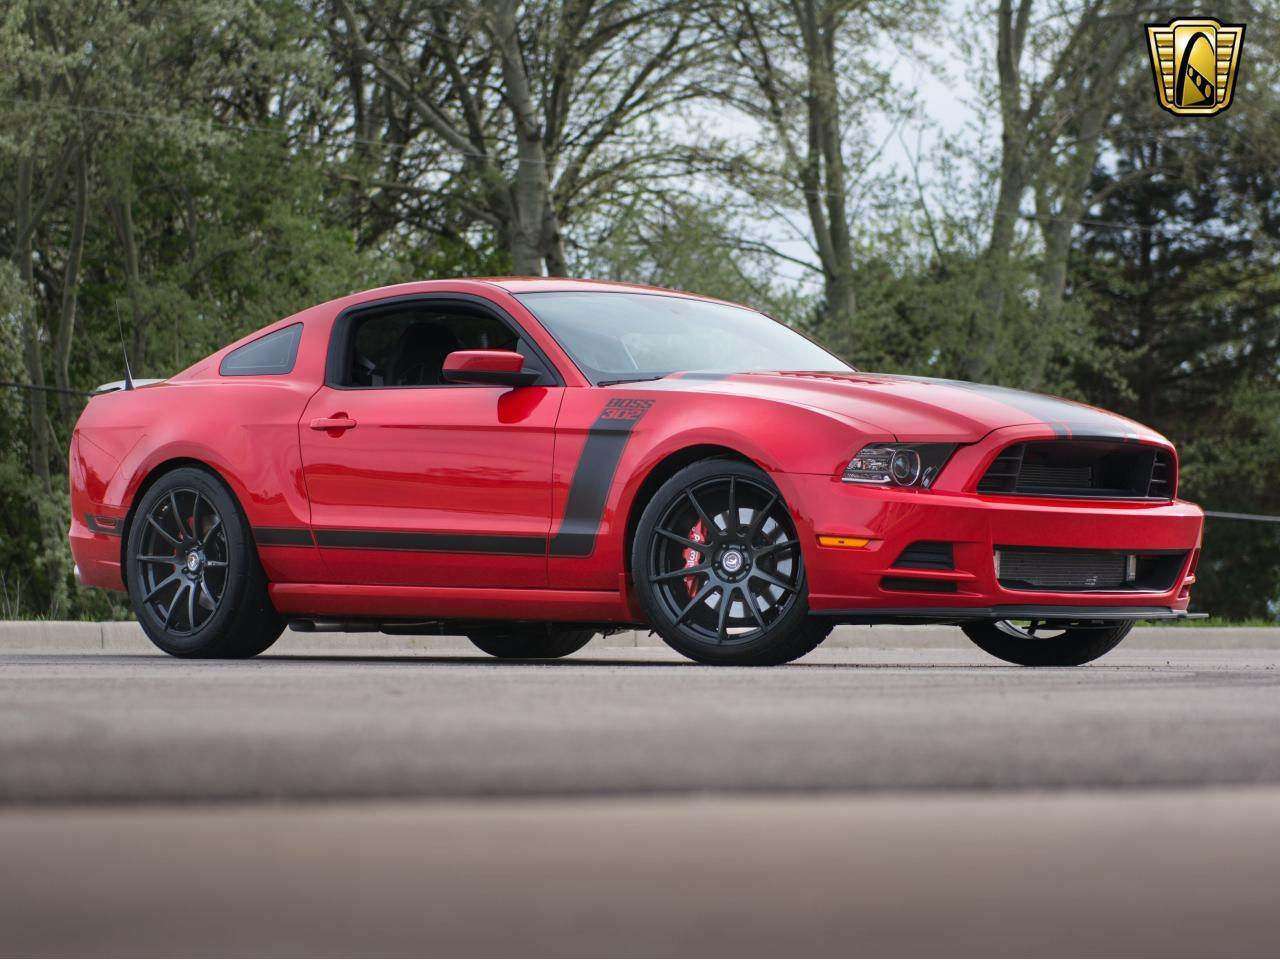 Large Picture of 2013 Ford Mustang - $49,995.00 Offered by Gateway Classic Cars - Milwaukee - L1AH